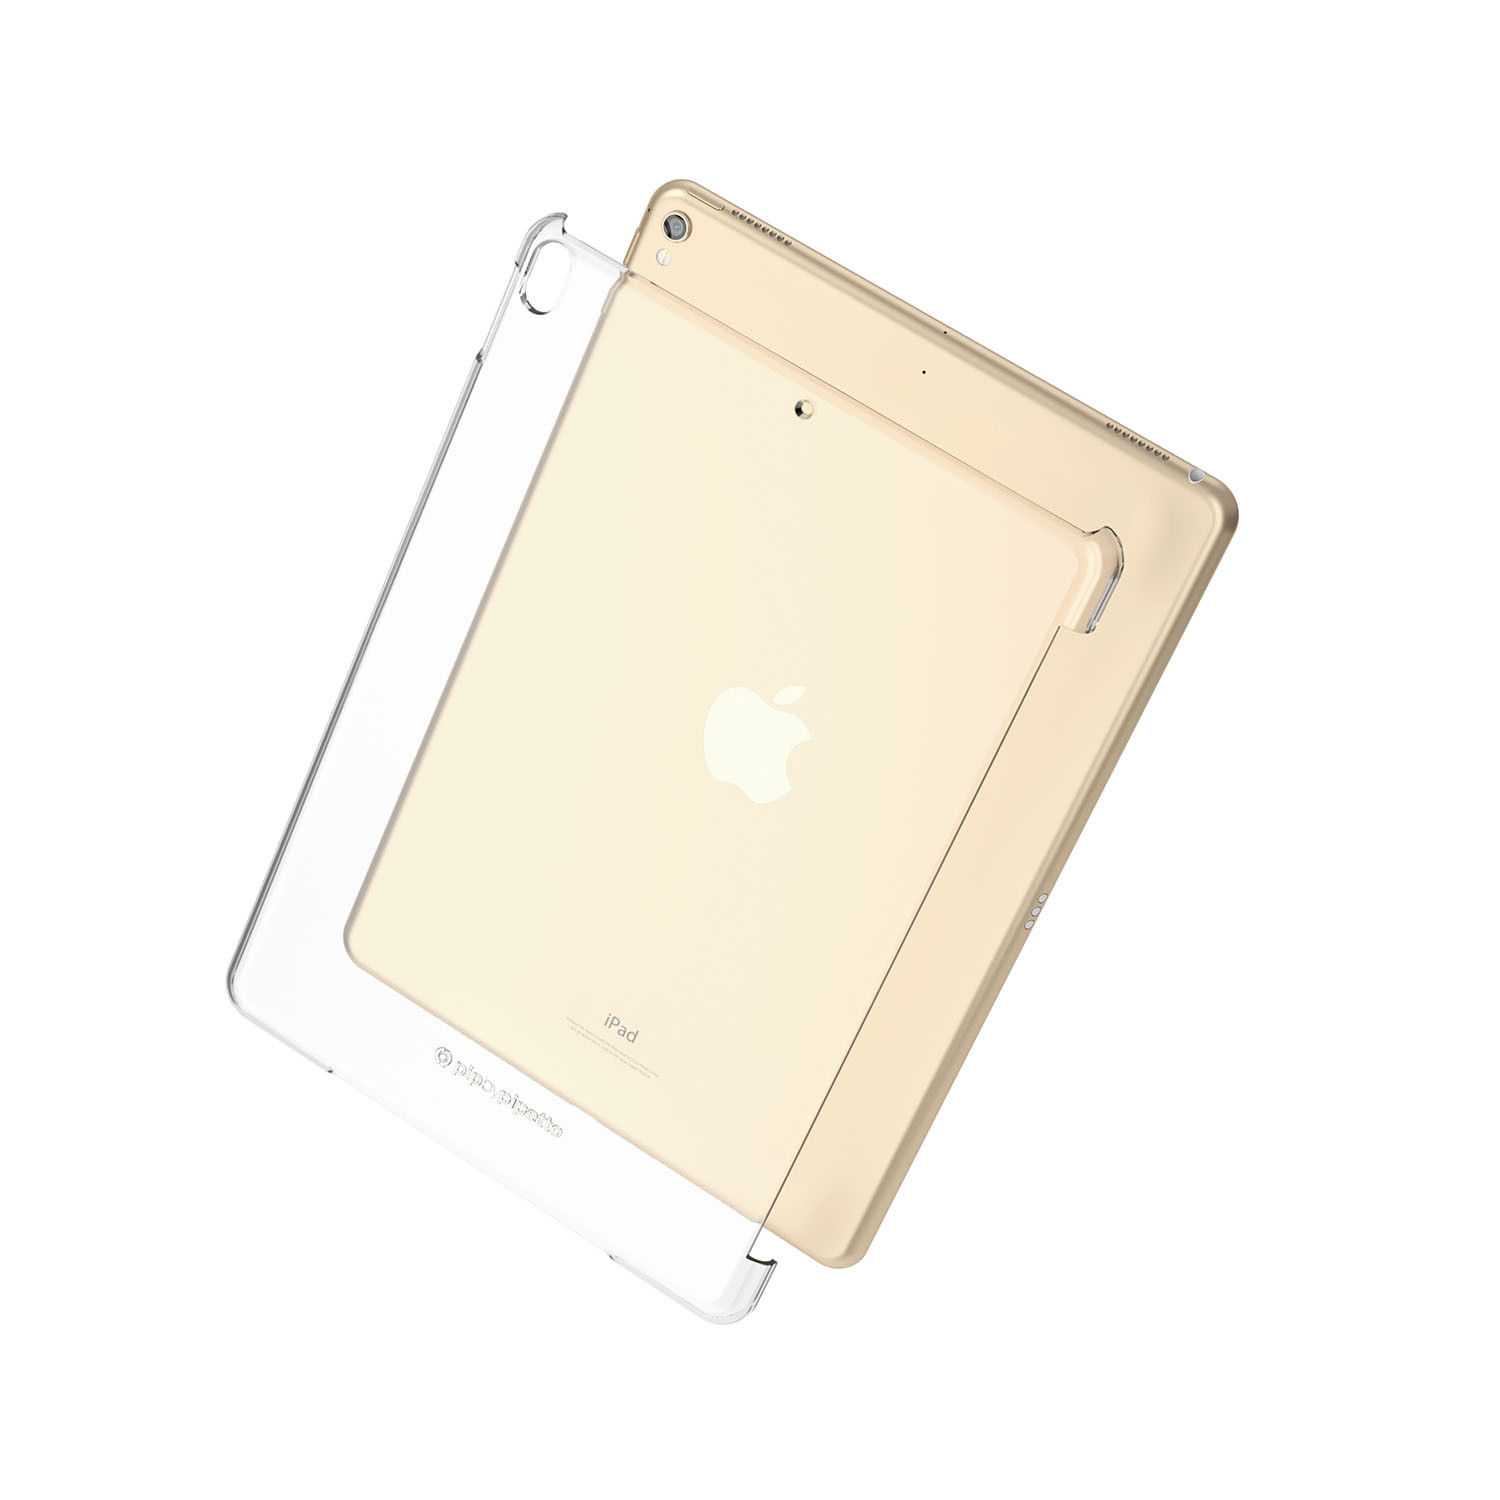 2ea6bf0dc767 pipetto ipad Pro 10.5 clear case - back expode